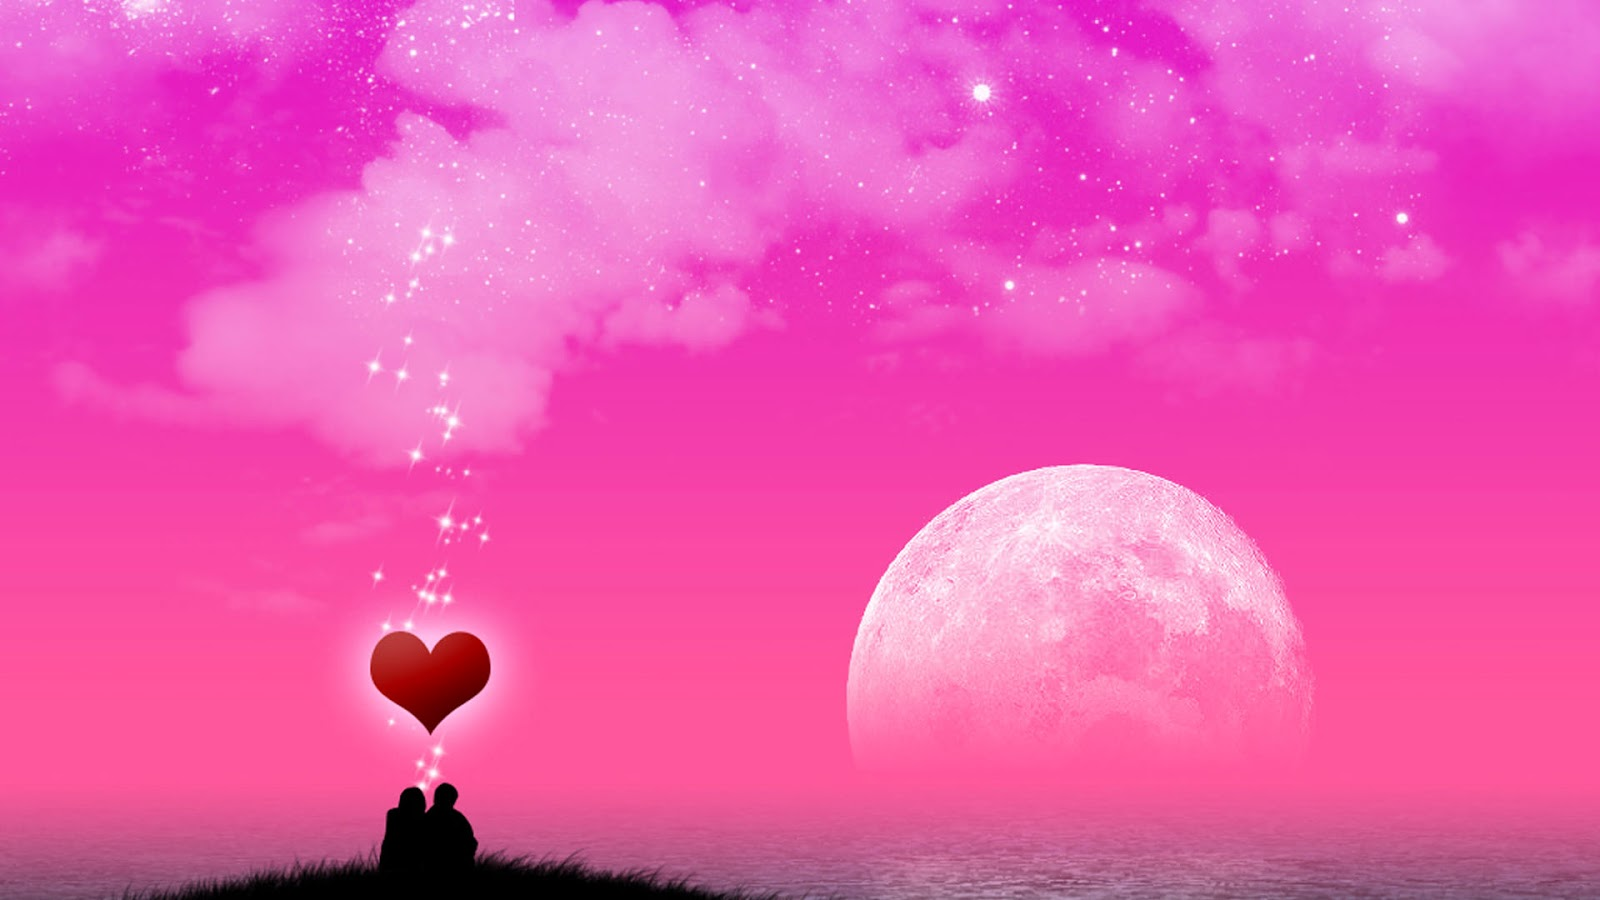 Love-couple-dreamland-romance-under-moon-image-HD-photo.jpg